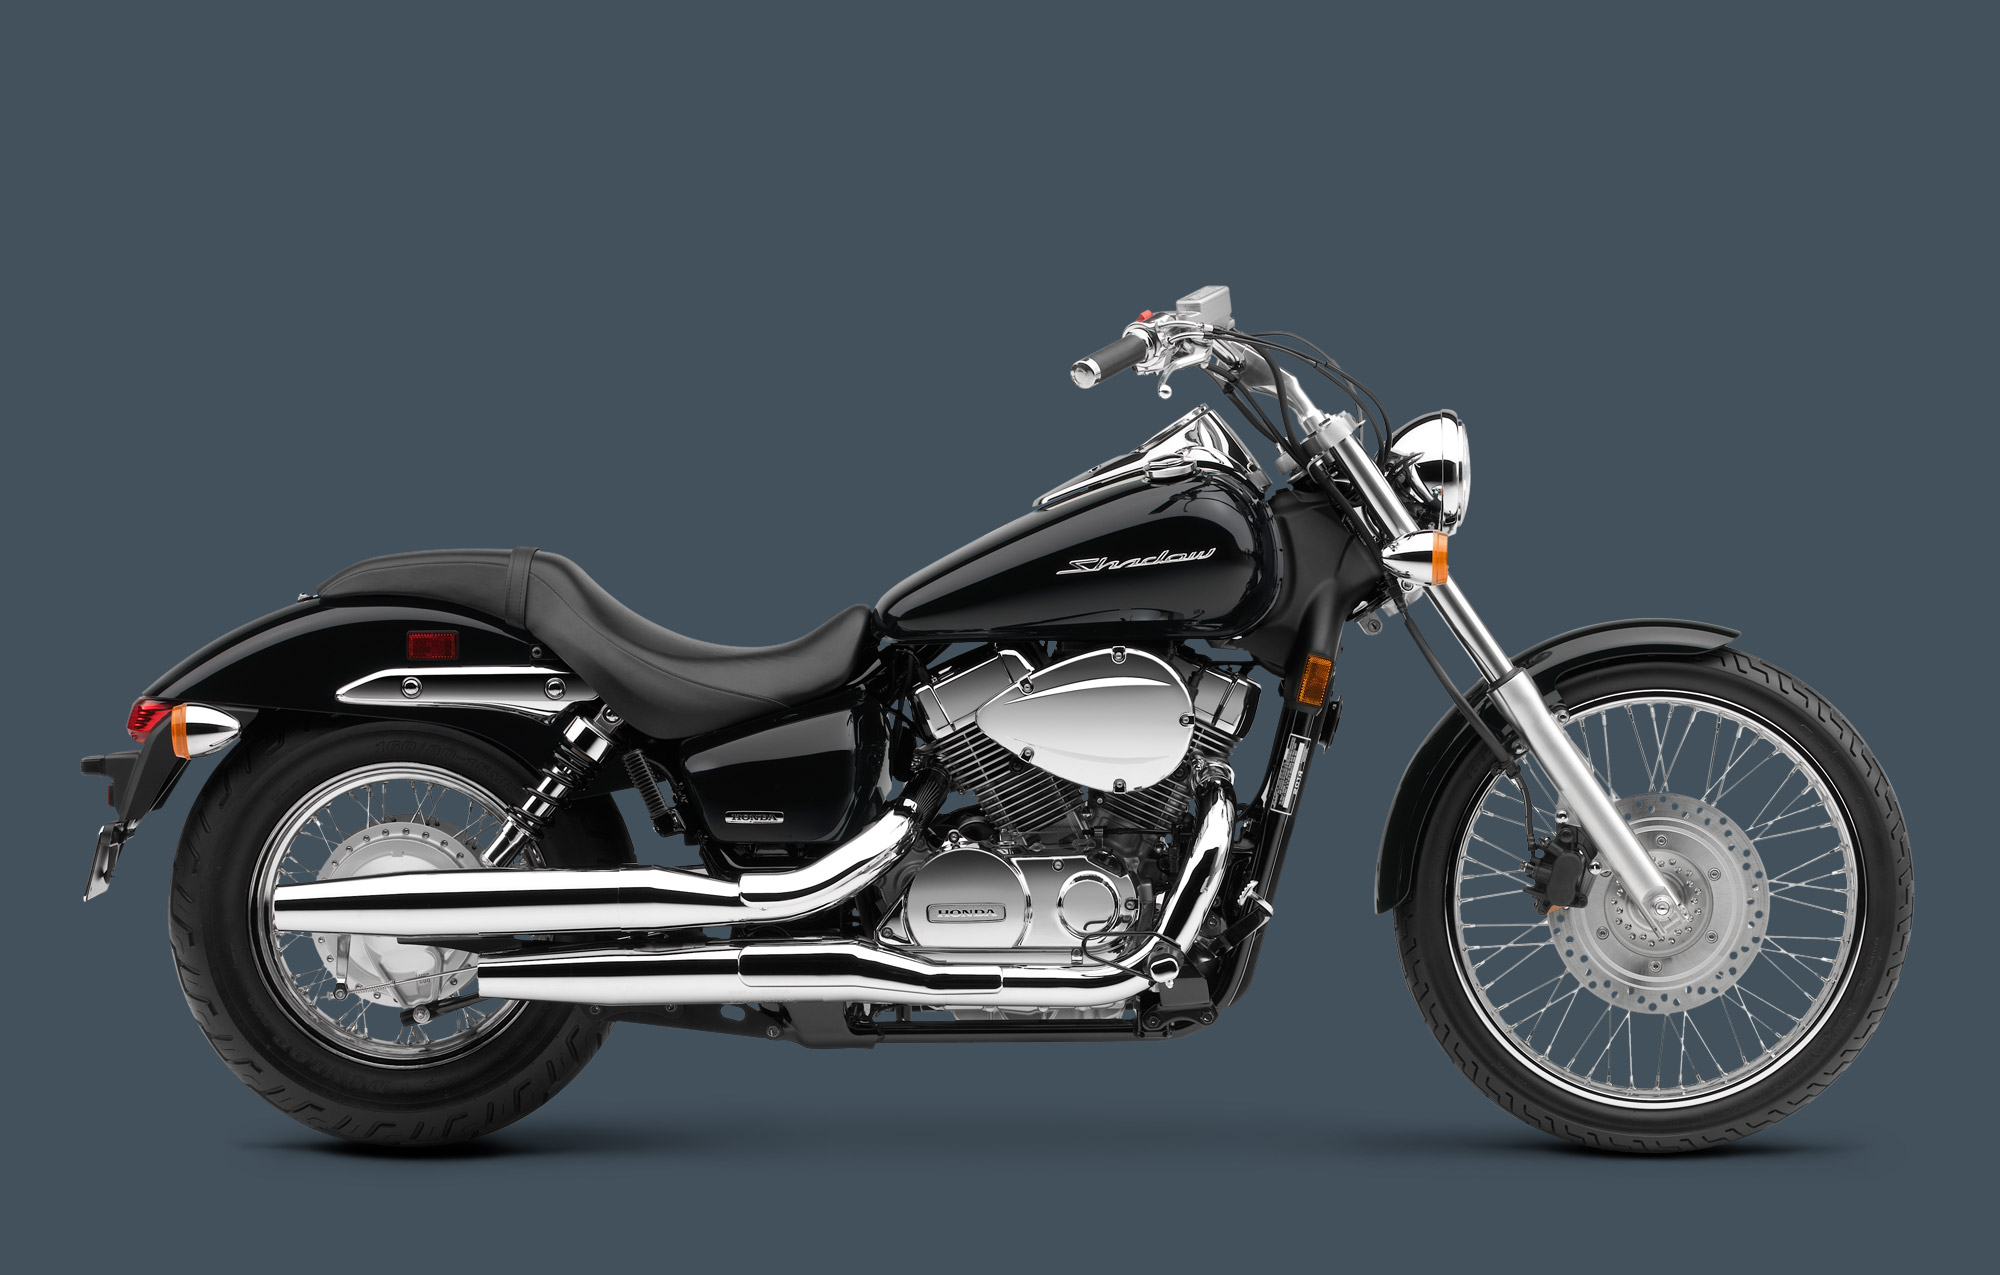 2014 Honda Shadow Spirit 750 Still Classic After All These Years